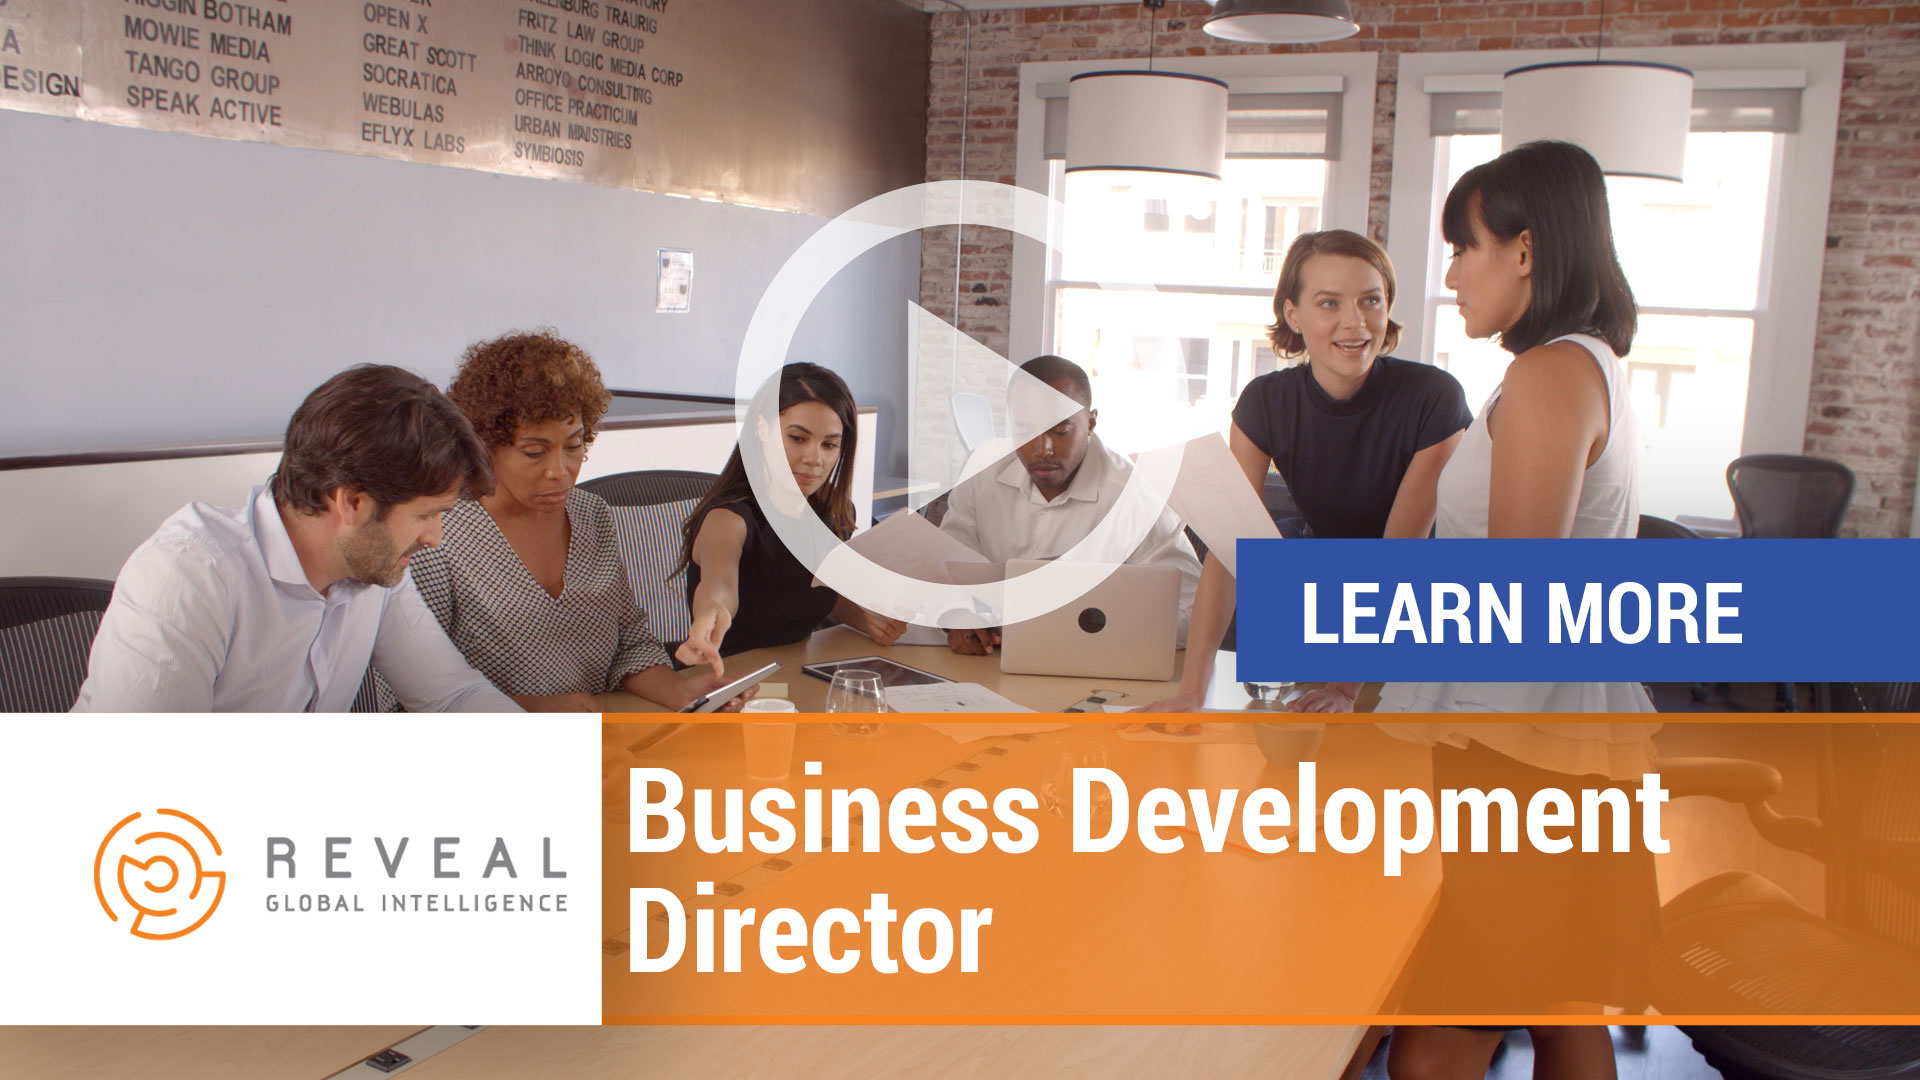 Watch our careers video for available job opening Business Development Director in TBD